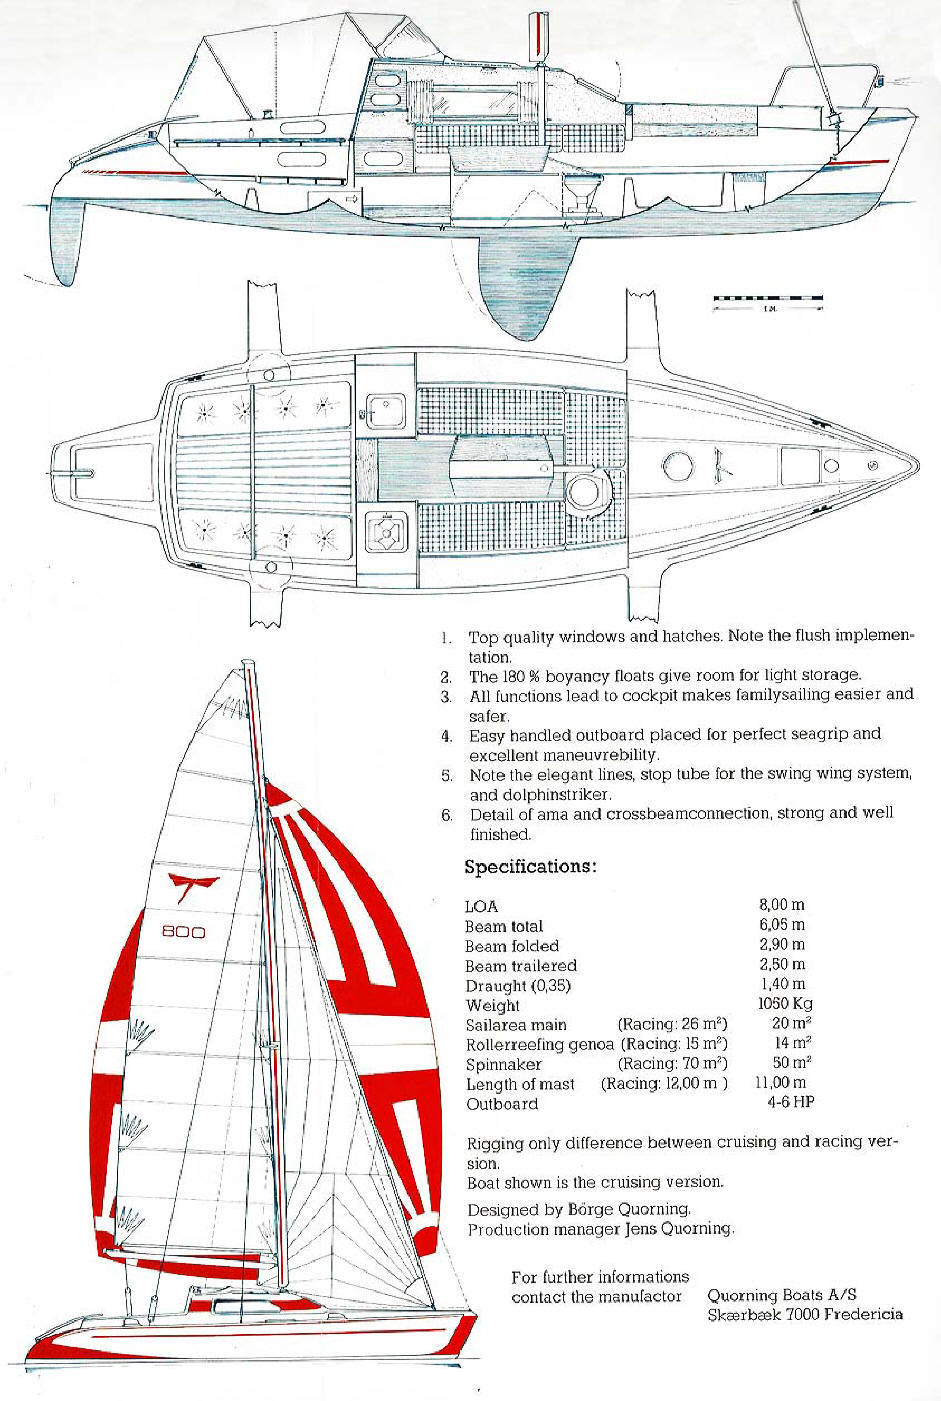 Original Dragonfly 800 Swing Wing brochure by Quorning Boats